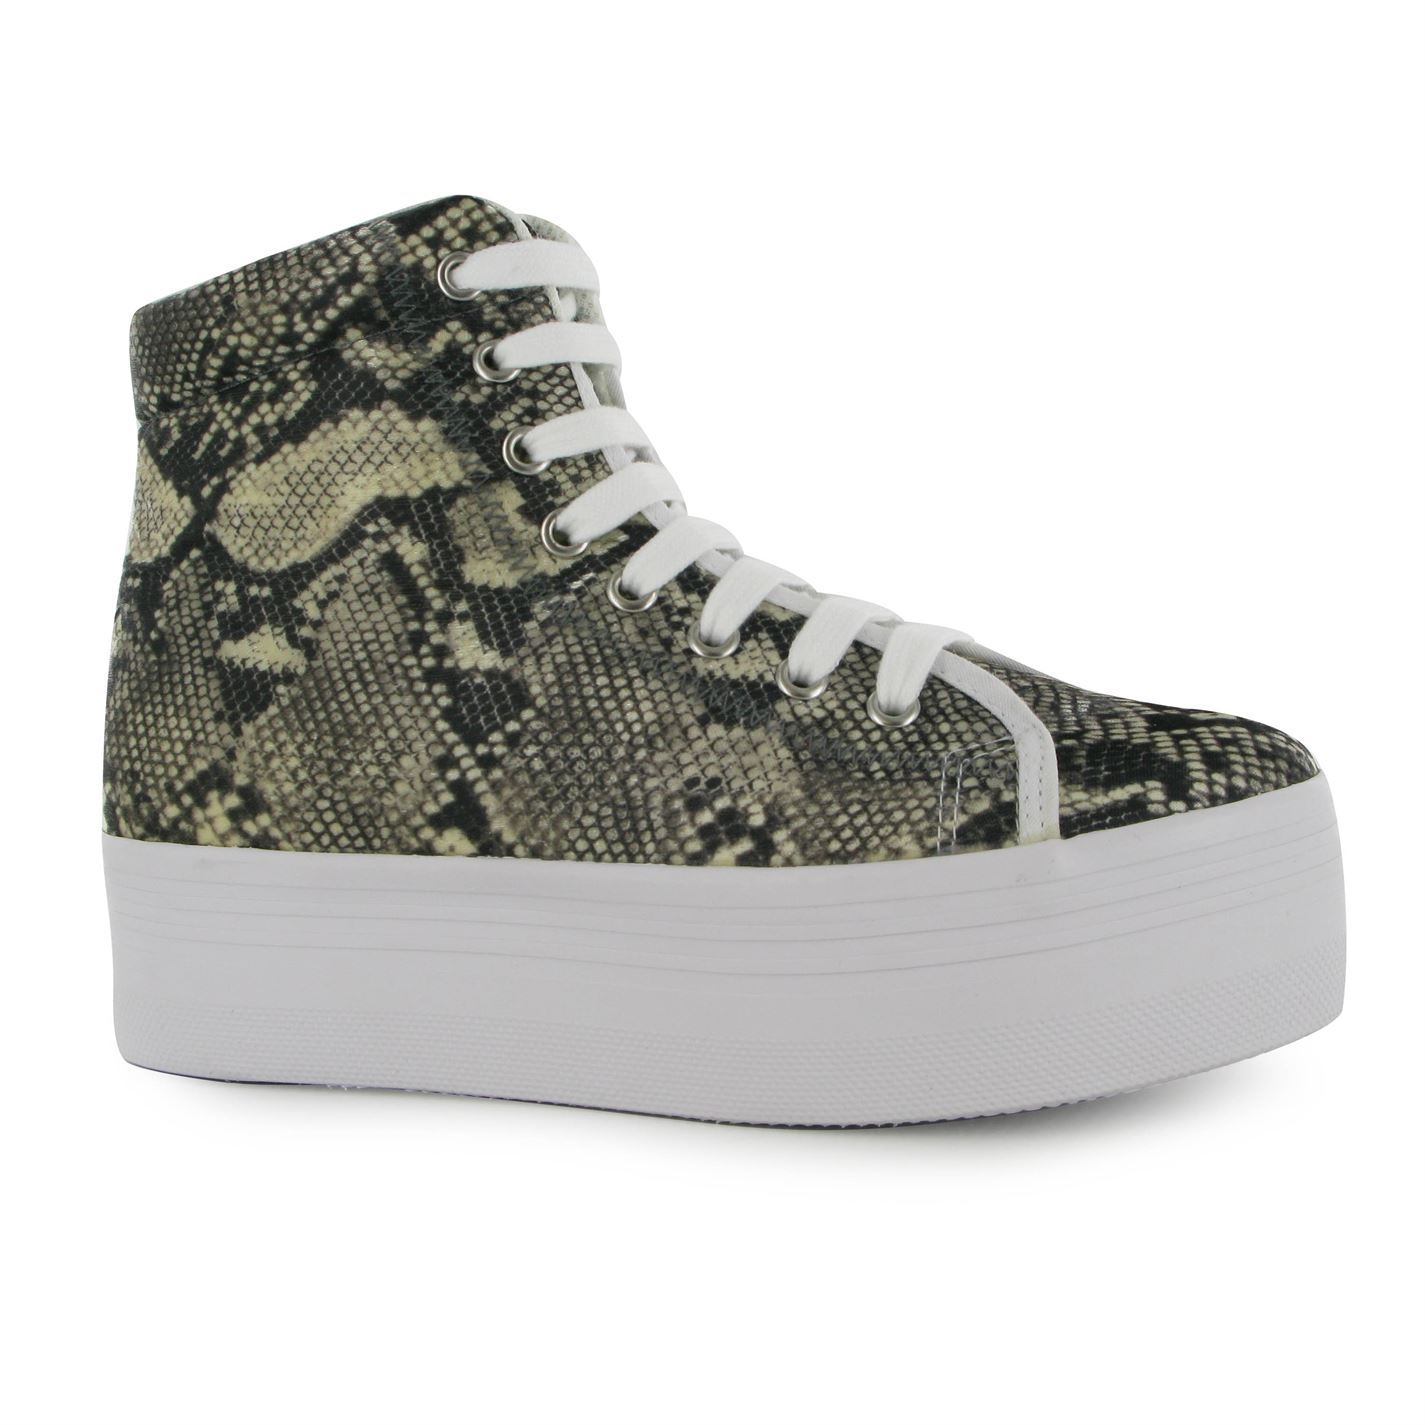 Jeffrey Campbell Womens Play Homg Snake Platform Shoes Lace Up Ladies